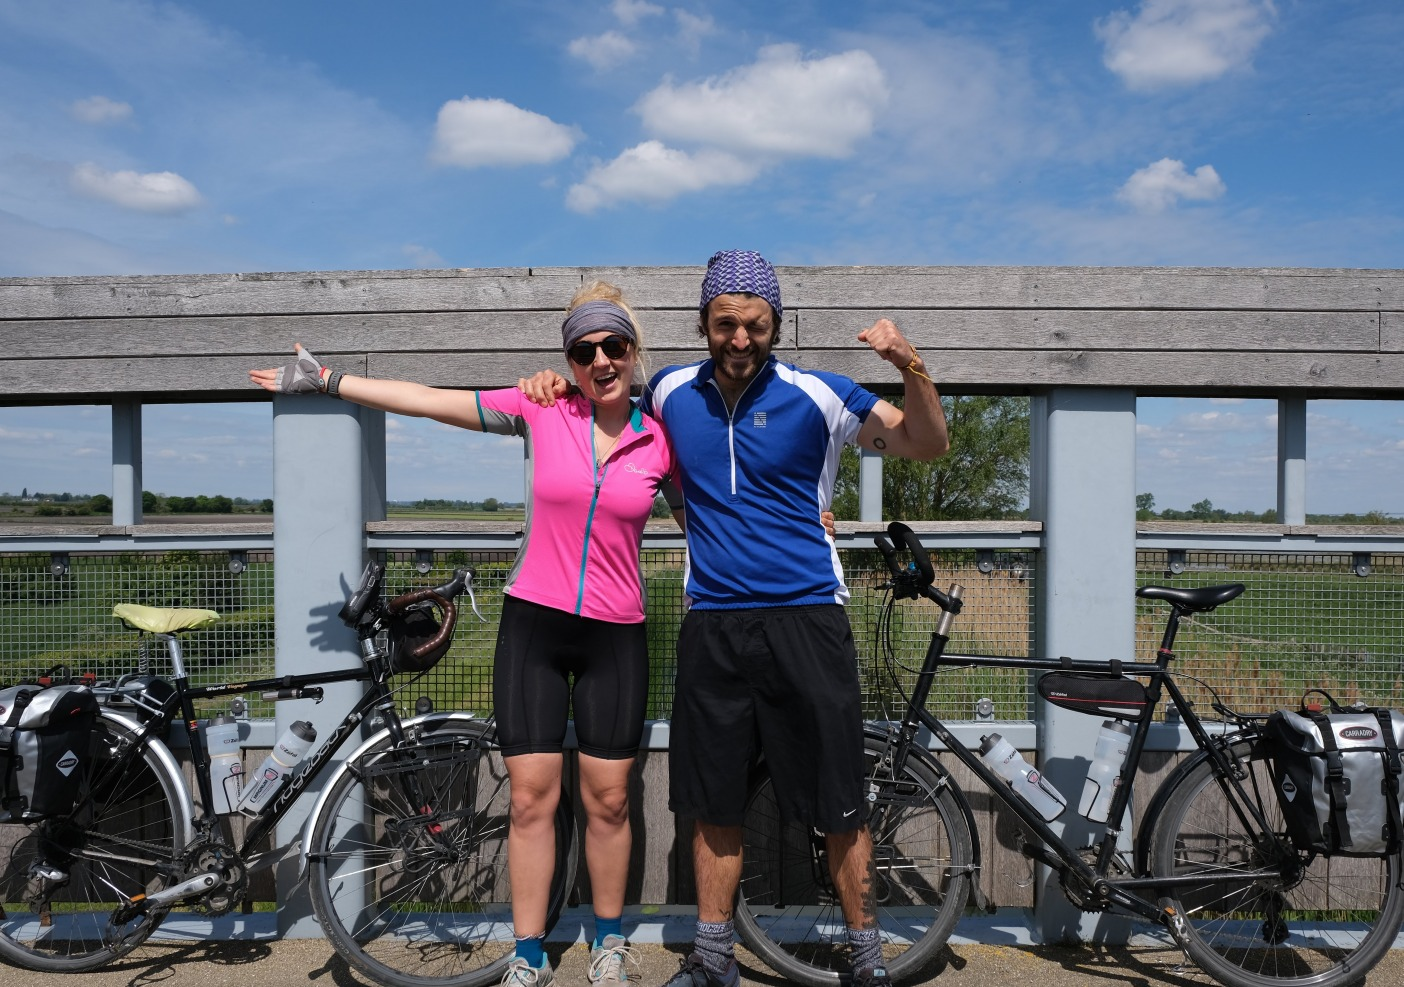 Vegan cycle tourers